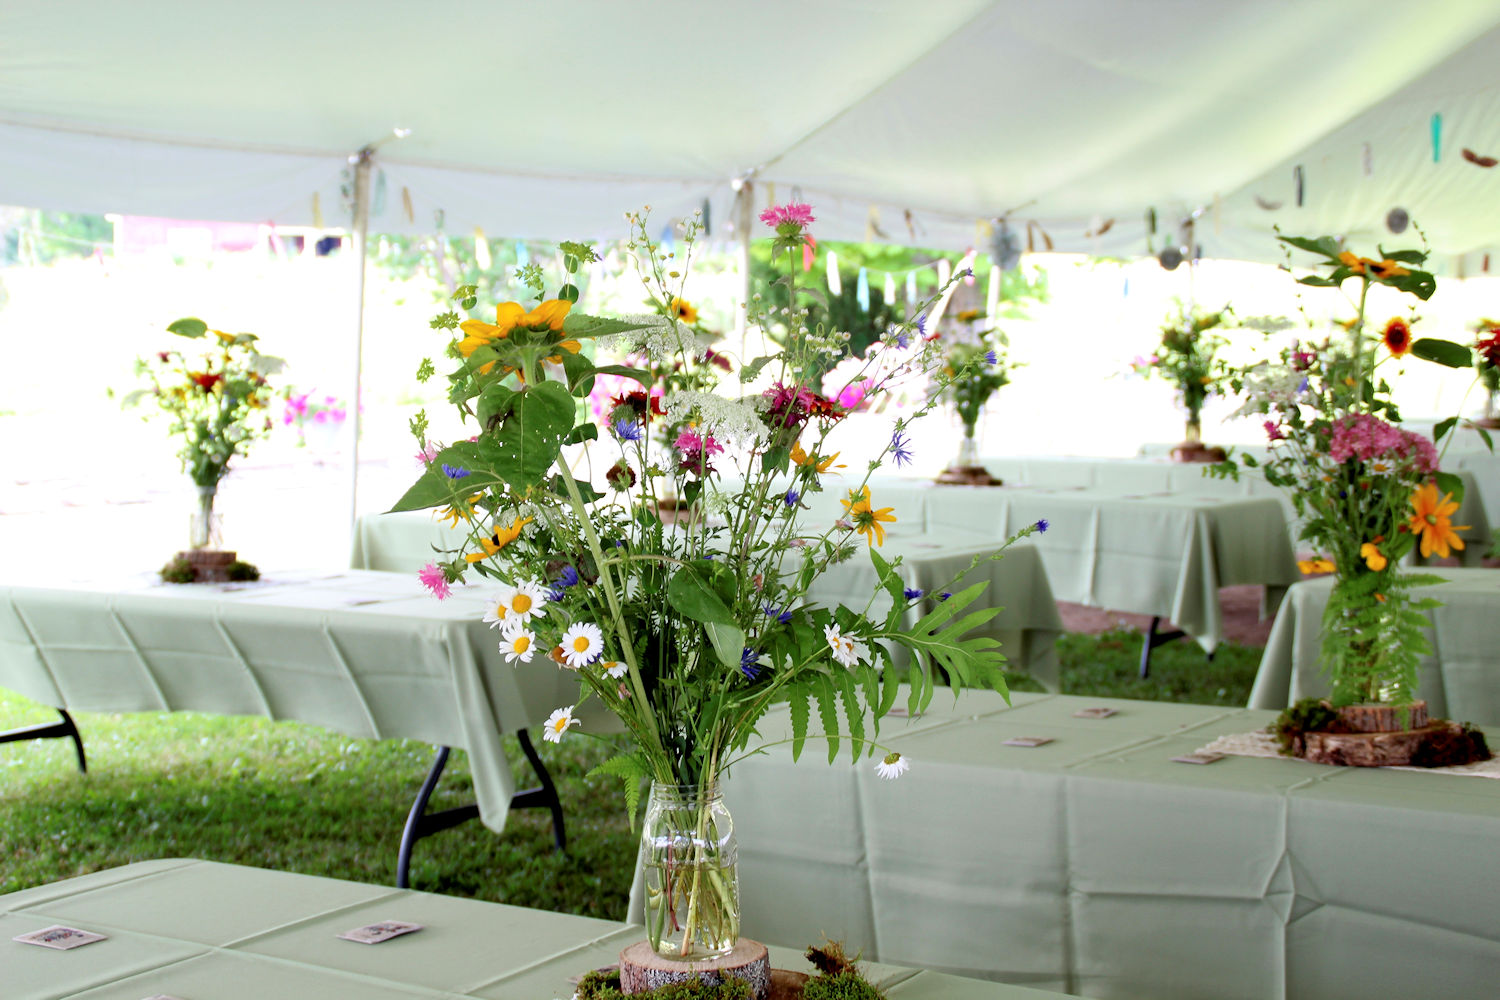 Do you really want to grow your own wedding flowers?